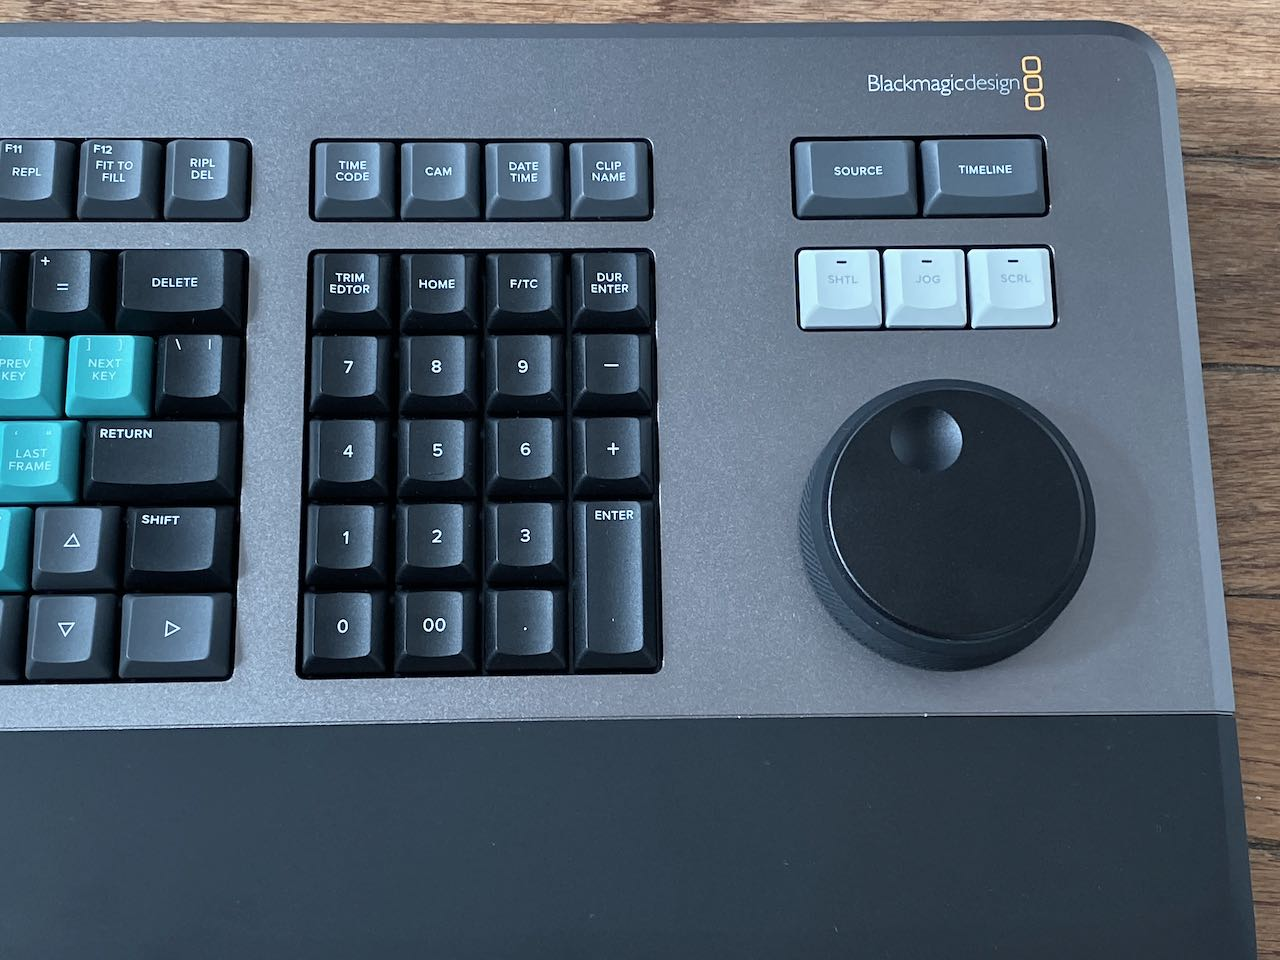 The Review Of The Blackmagic Design Resolve Editor Keyboard By Scott Simmons Provideo Coalition